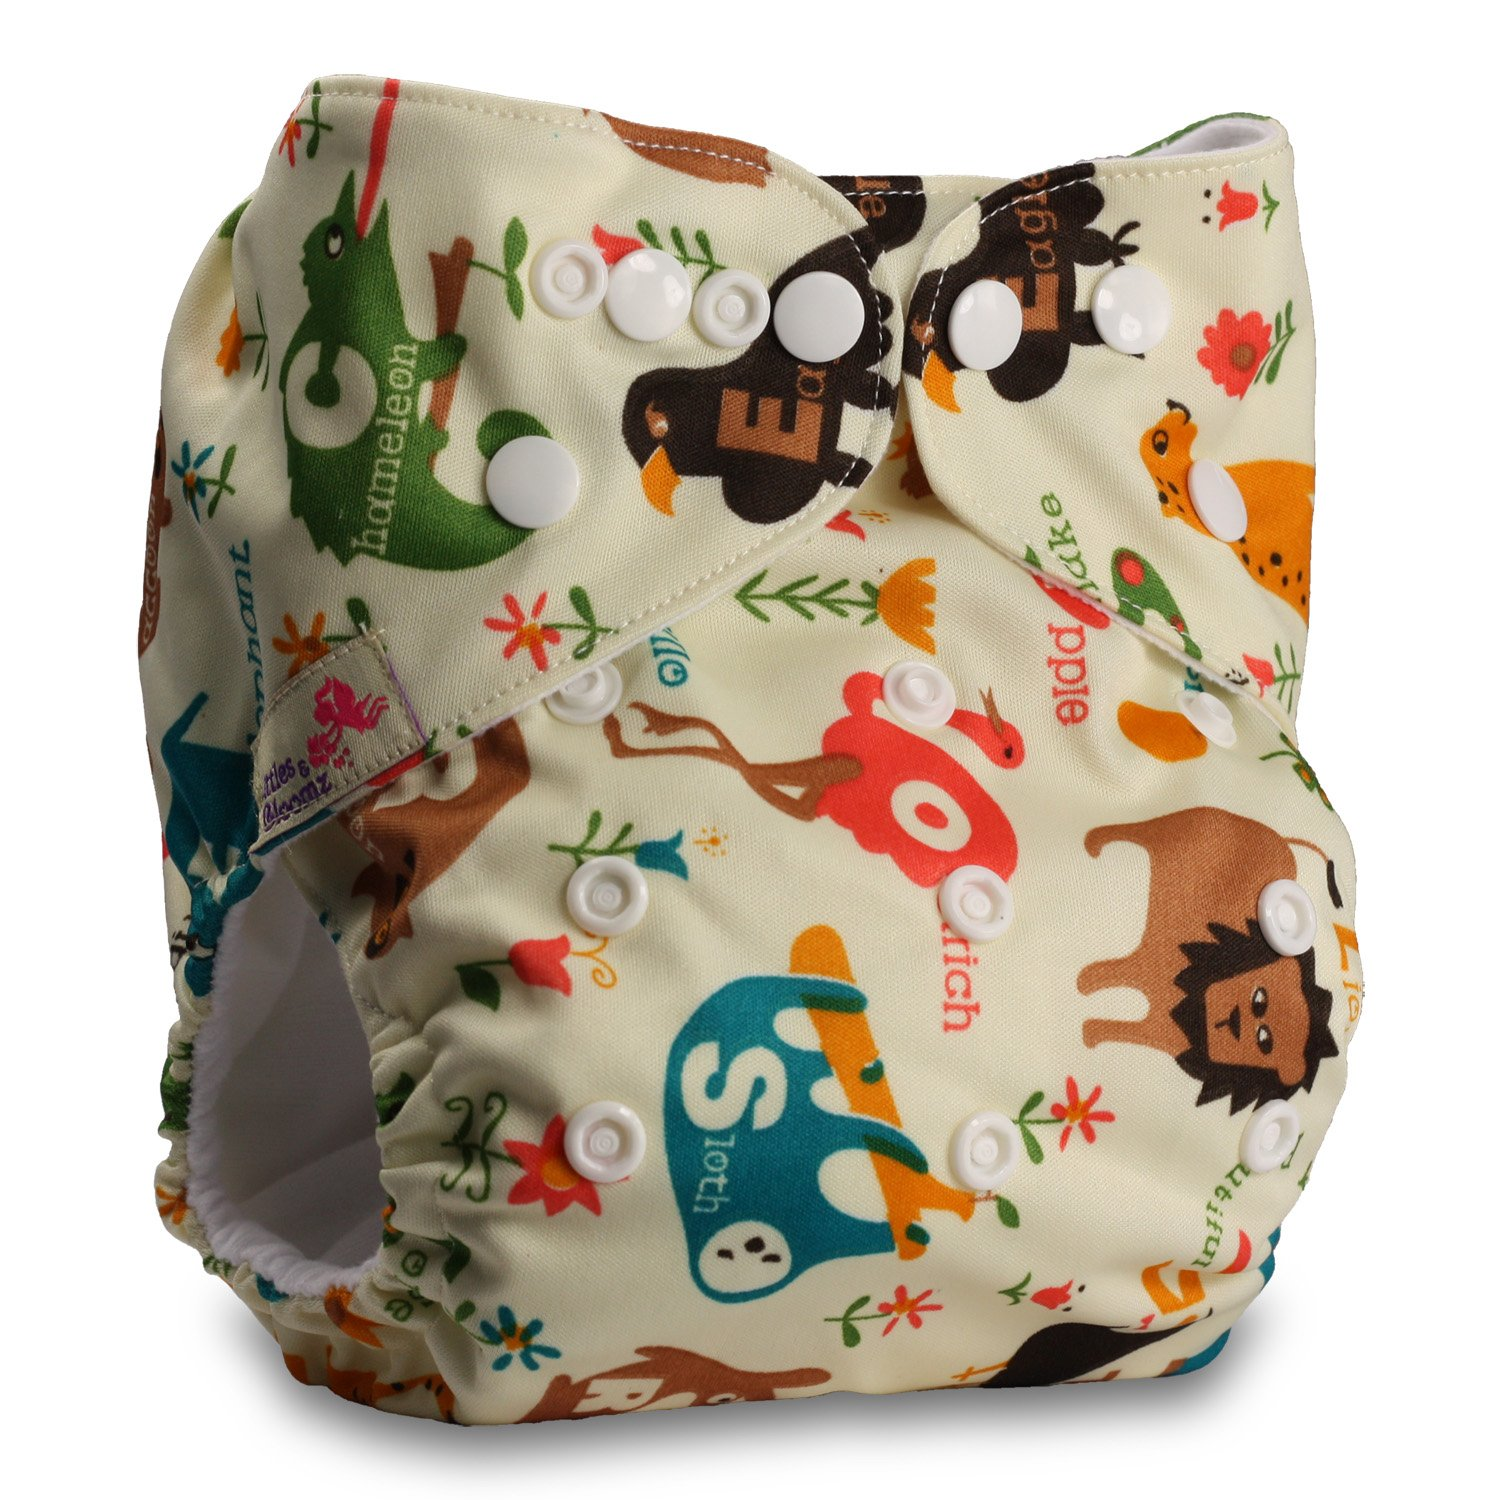 Littles & Bloomz, Reusable Pocket Cloth Nappy, Fastener: Popper, Set of 1, Pattern 34, With 1 Bamboo Insert